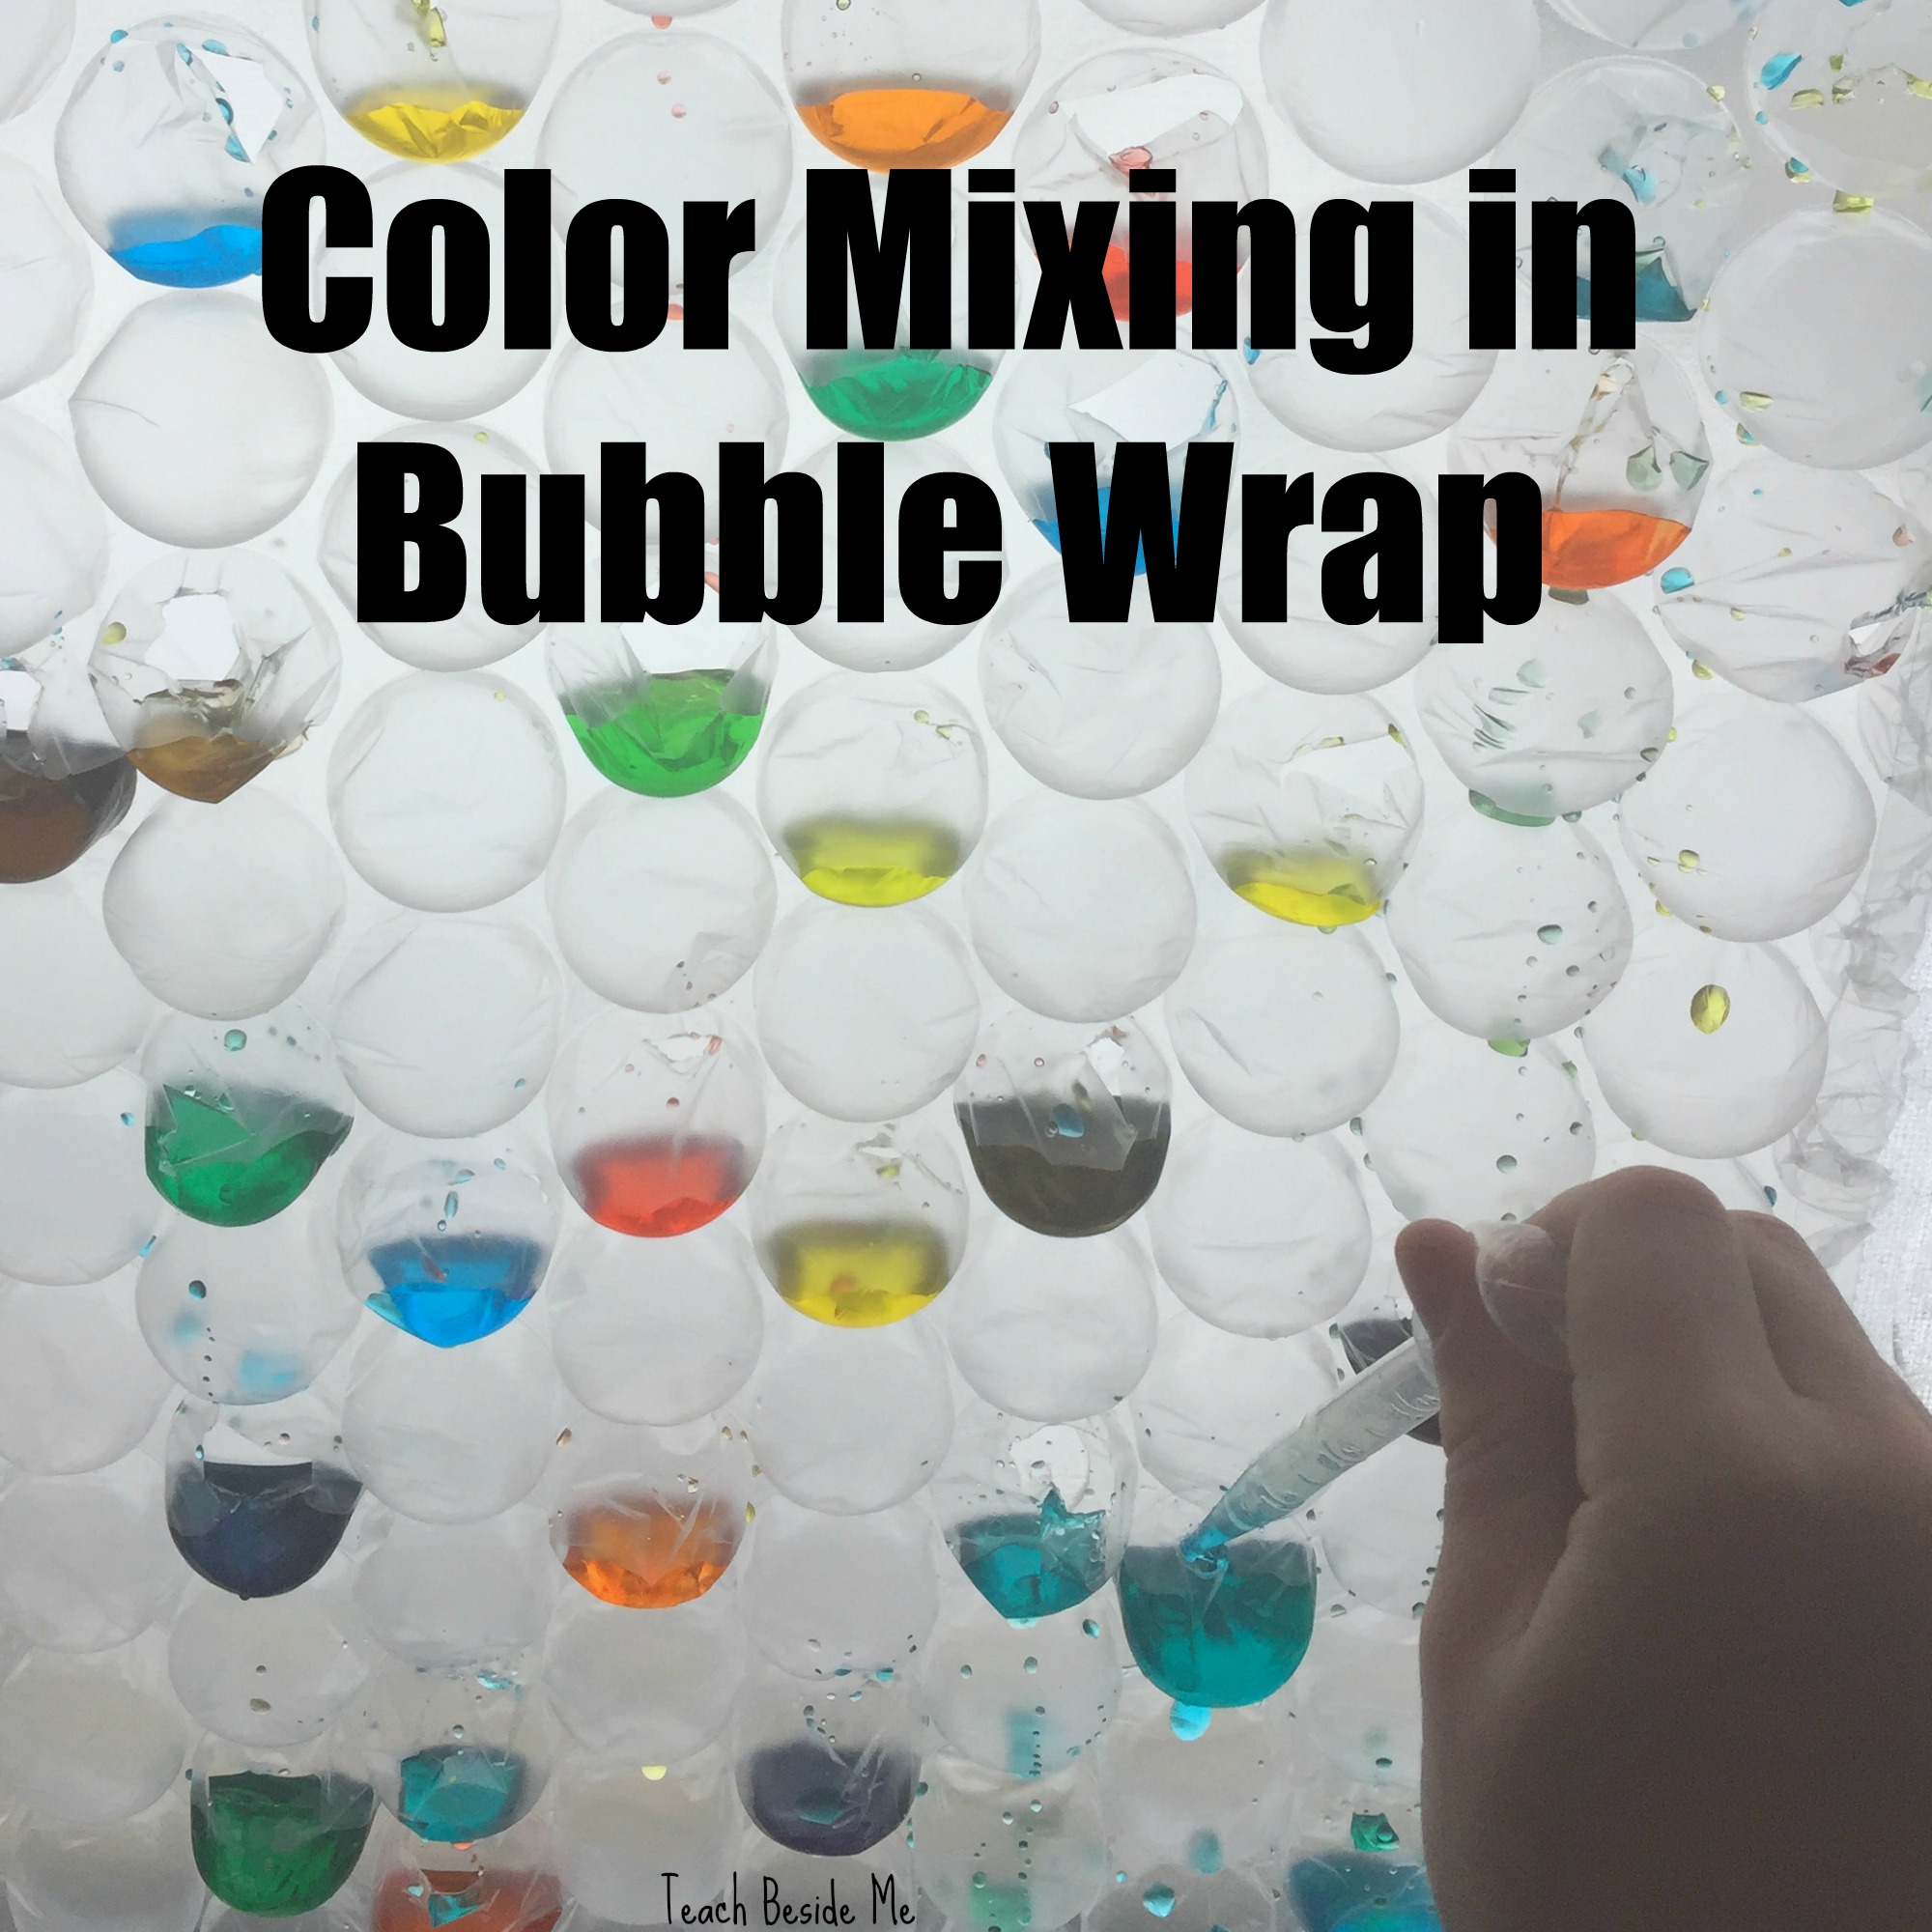 Rainbow Color Mixing In Bubble Wrap